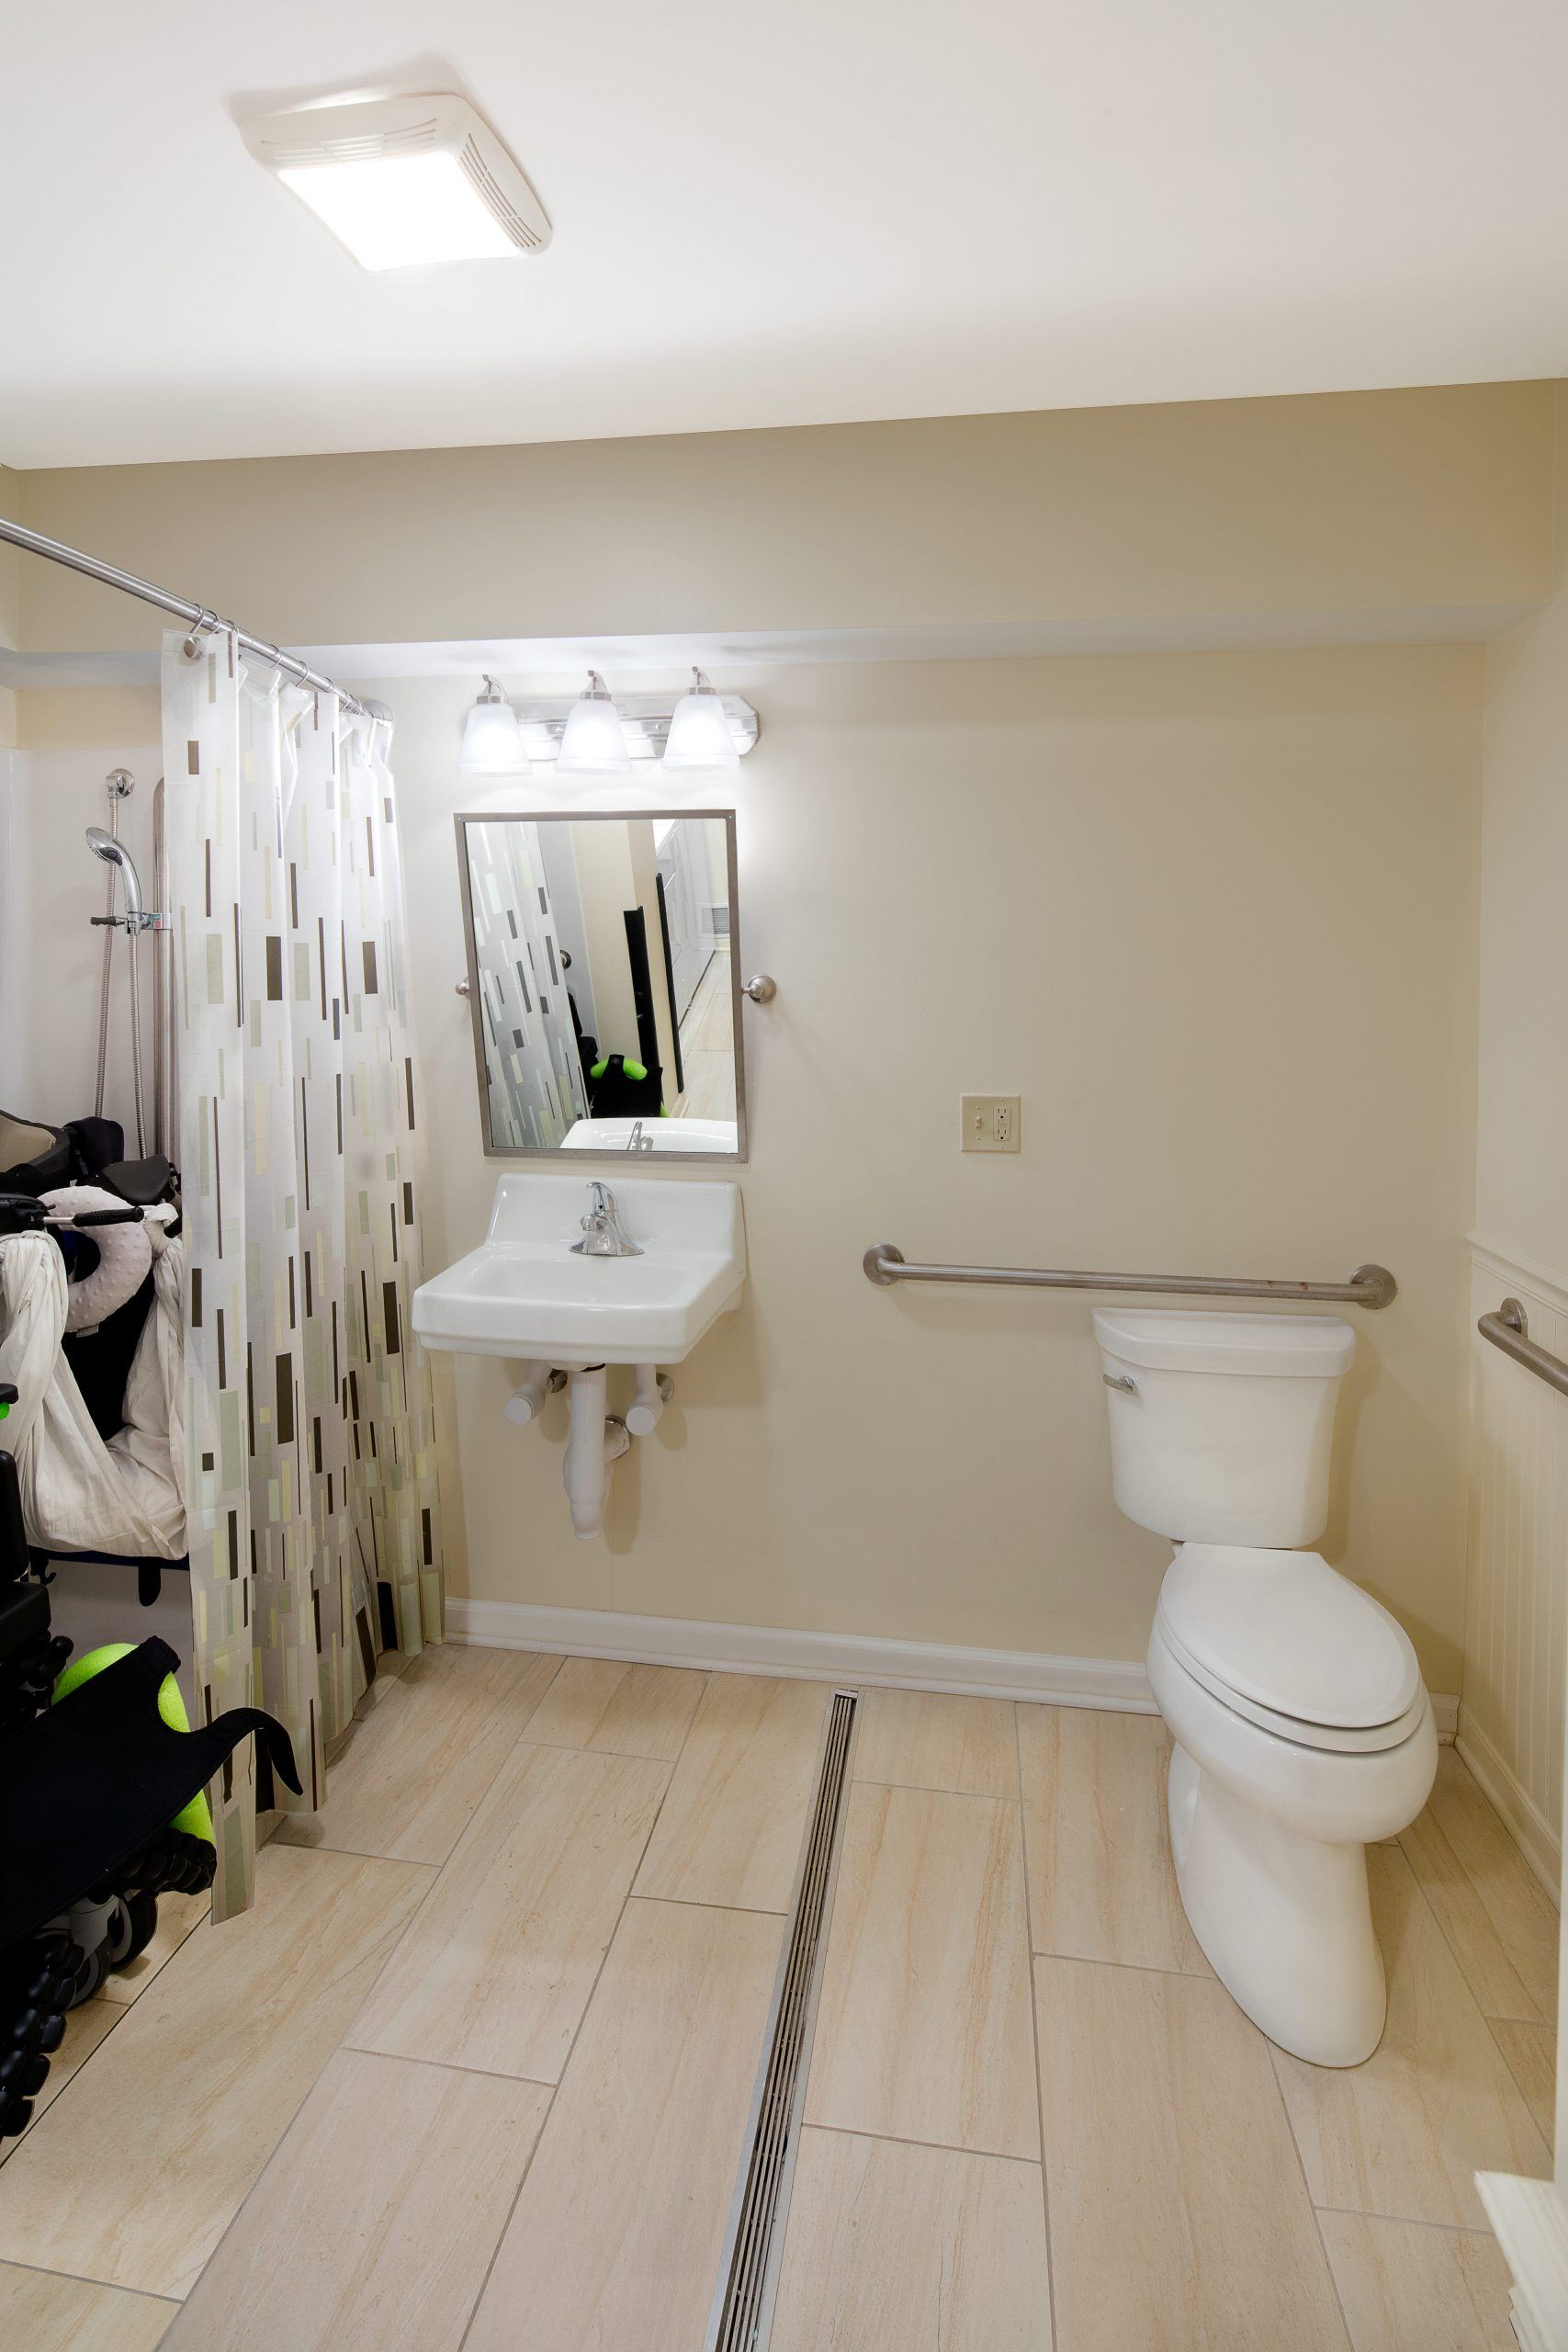 renovated bathroom with roll-in shower on the left